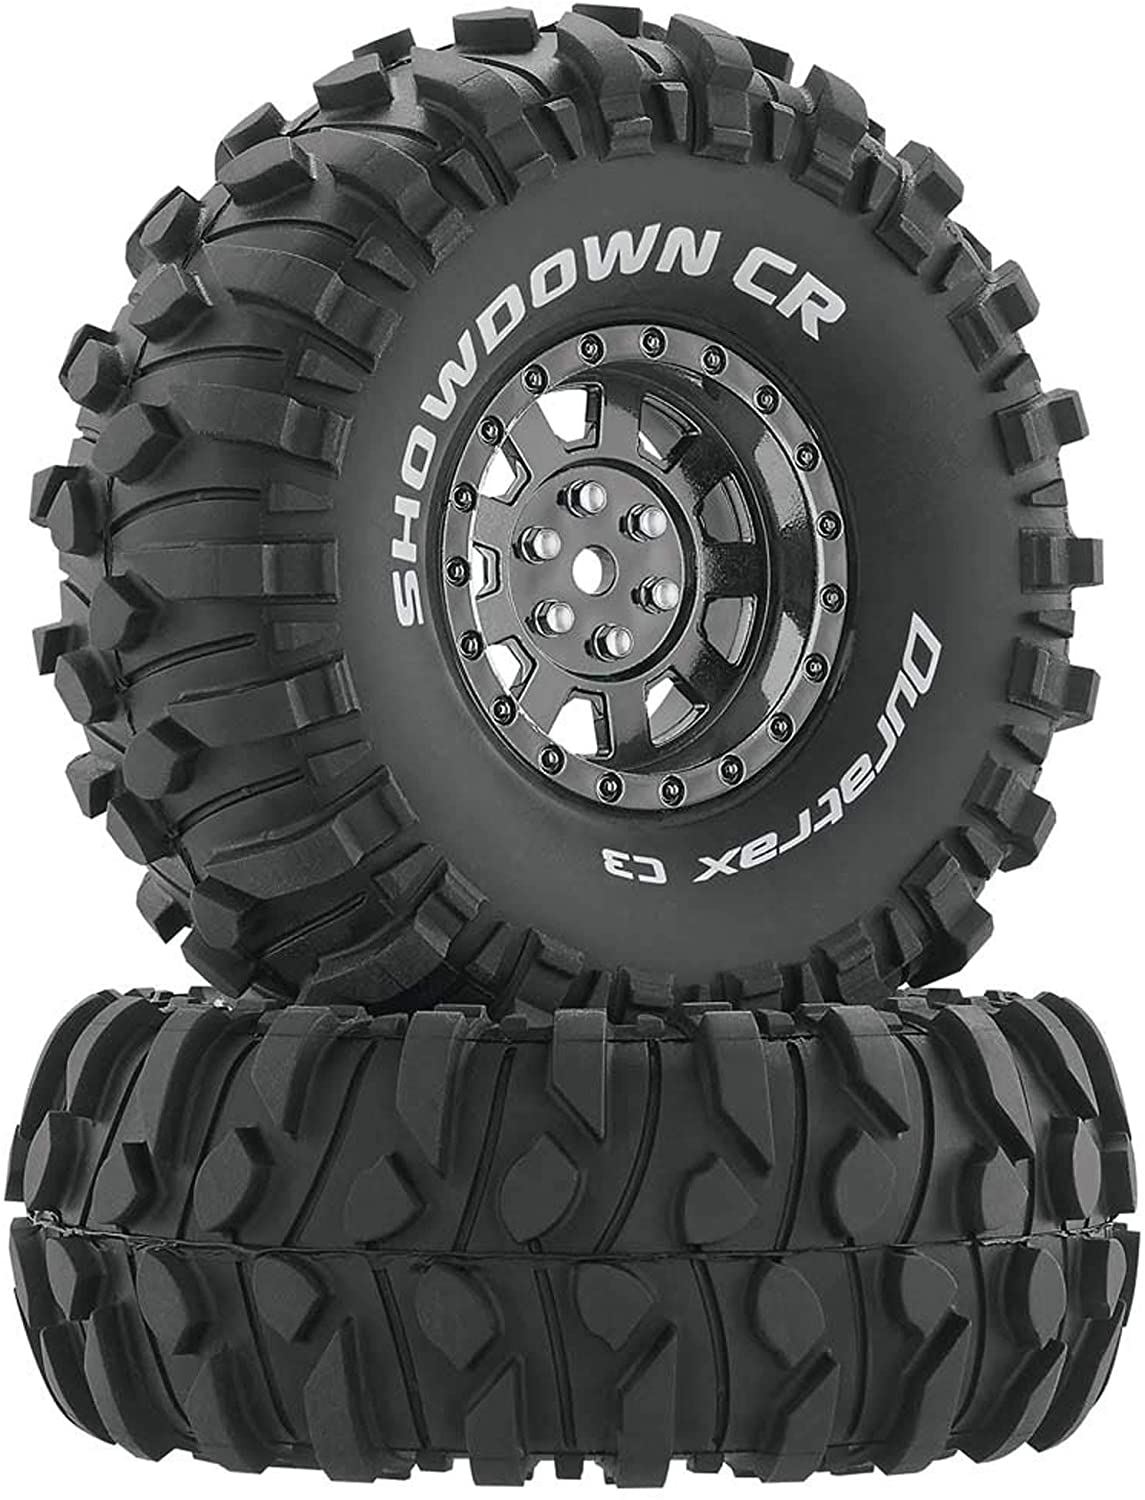 Duratrax Showdown RC Rock Crawler Tires with Foam Inserts, C3 Super Soft Compound, High Traction, 1.9